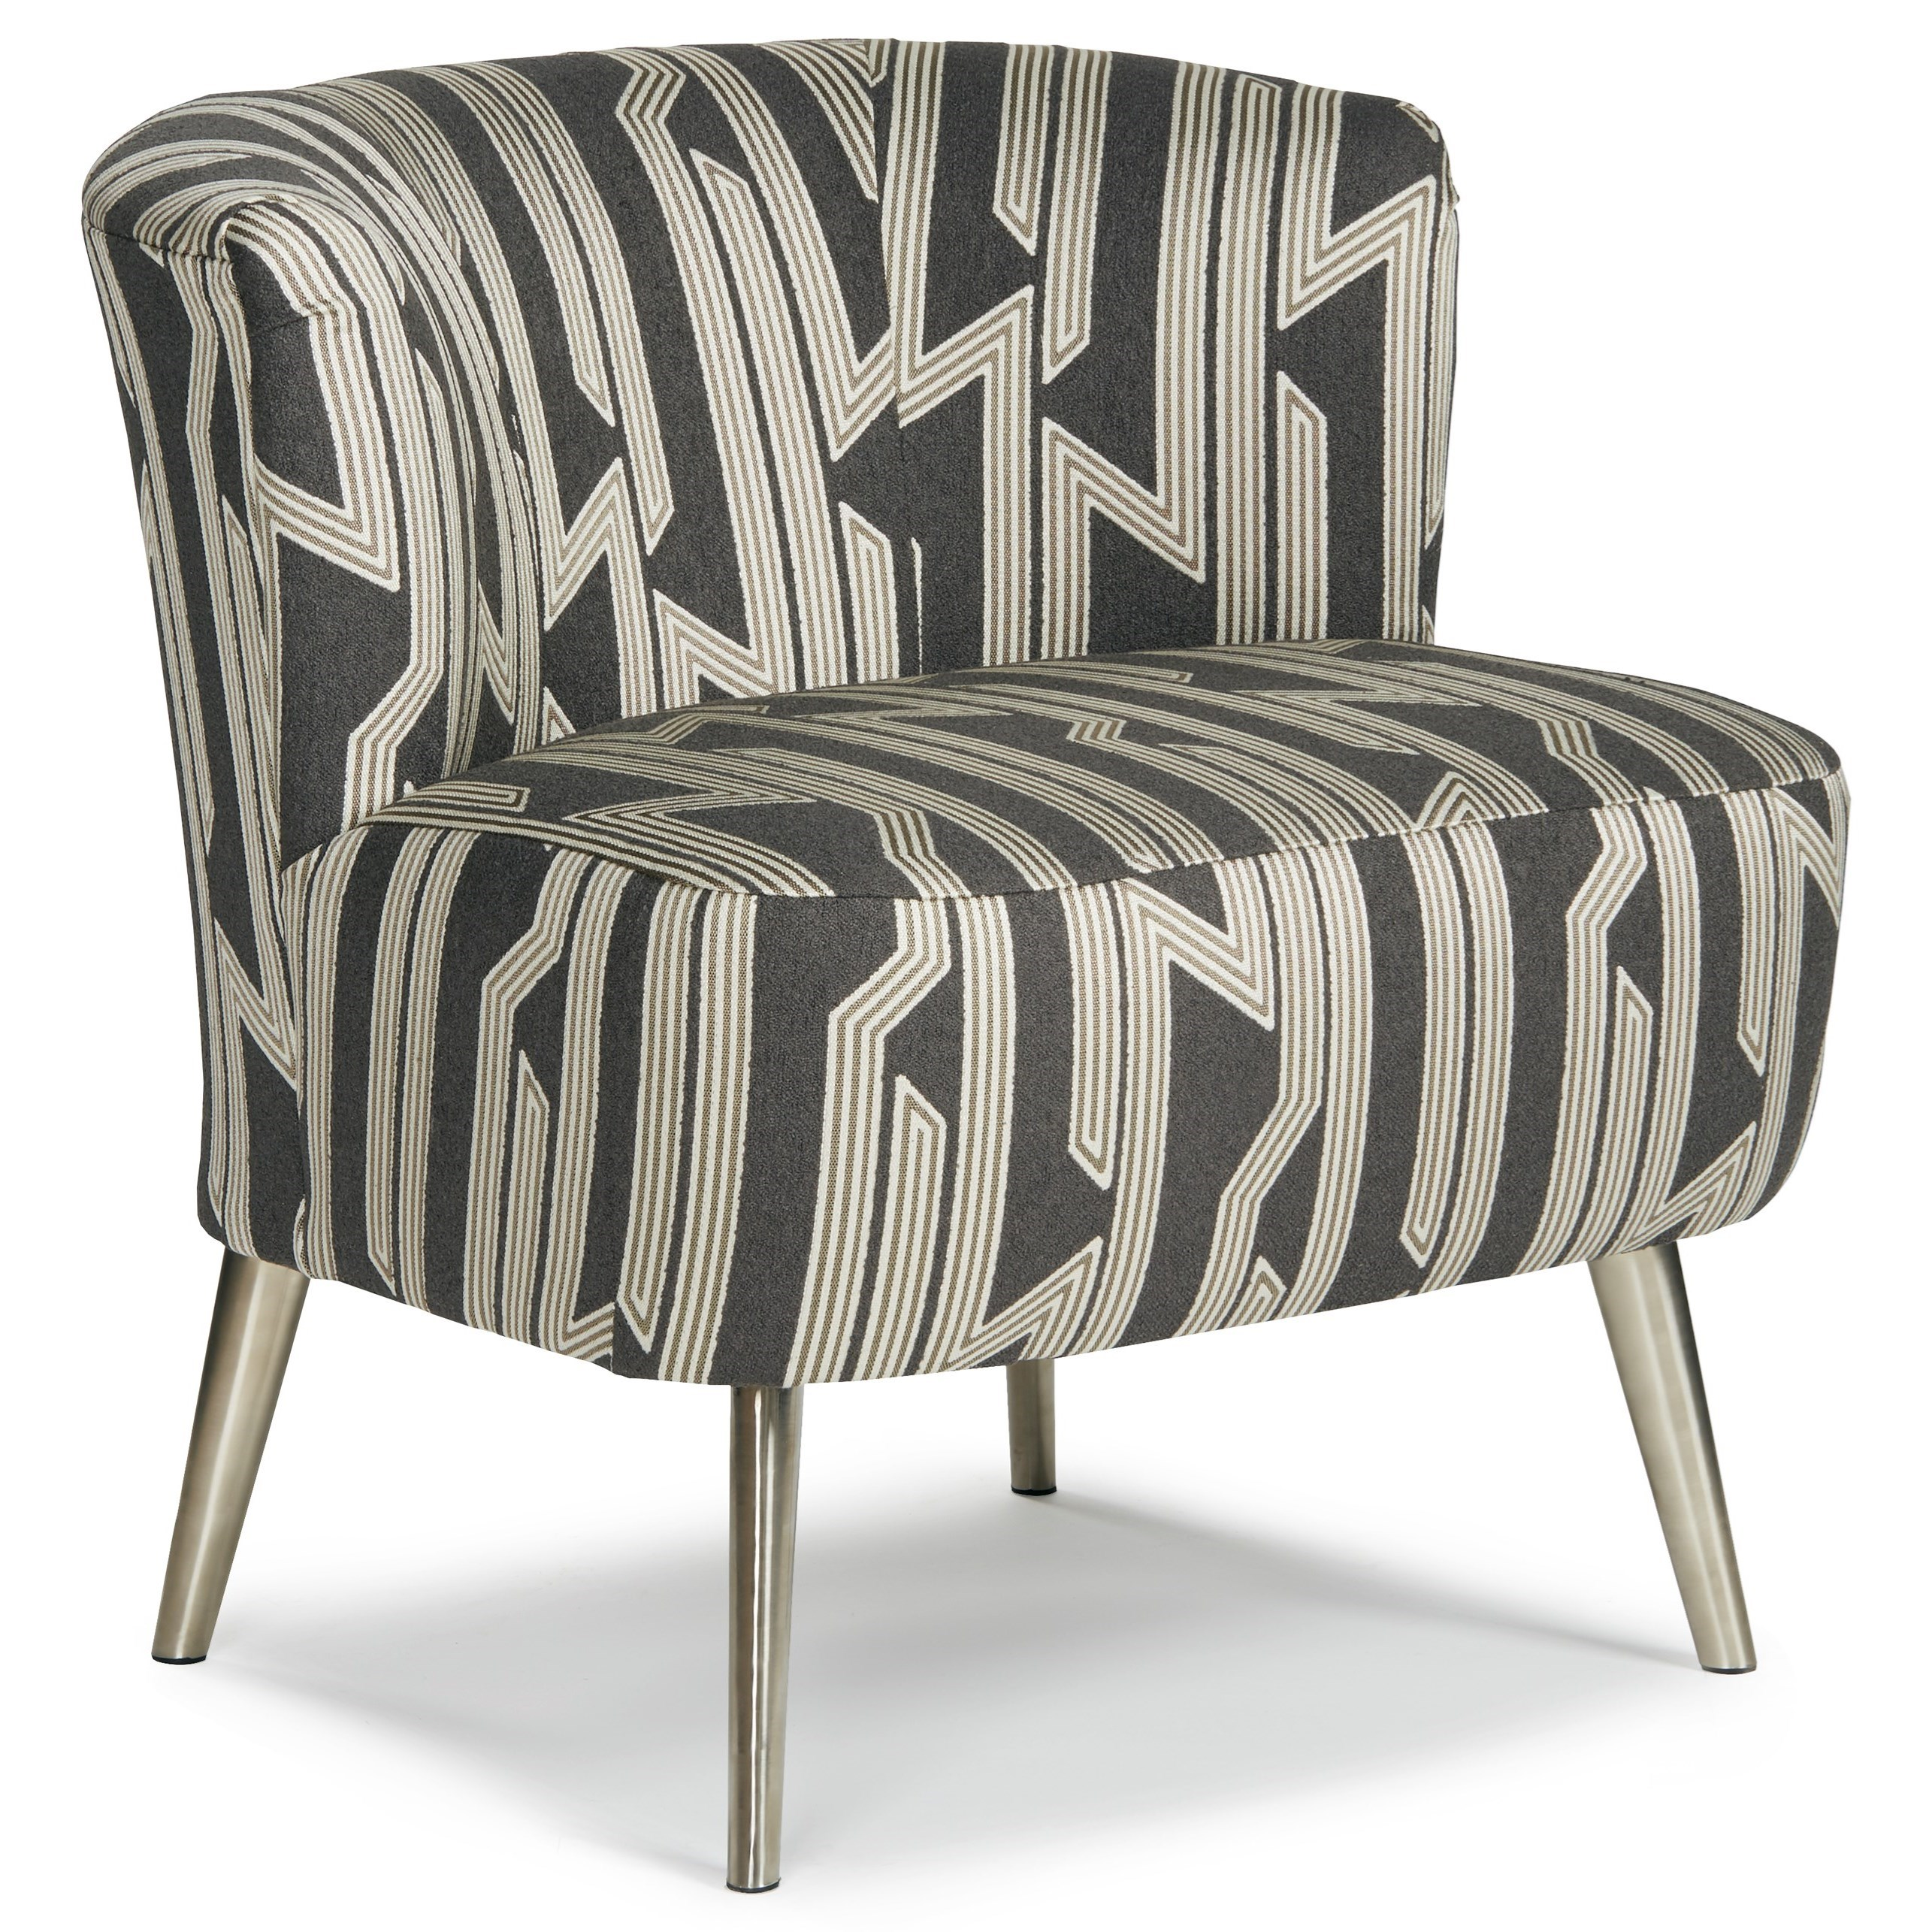 Best Xpress - Fresno Accent Chair by Best Home Furnishings at Best Home Furnishings